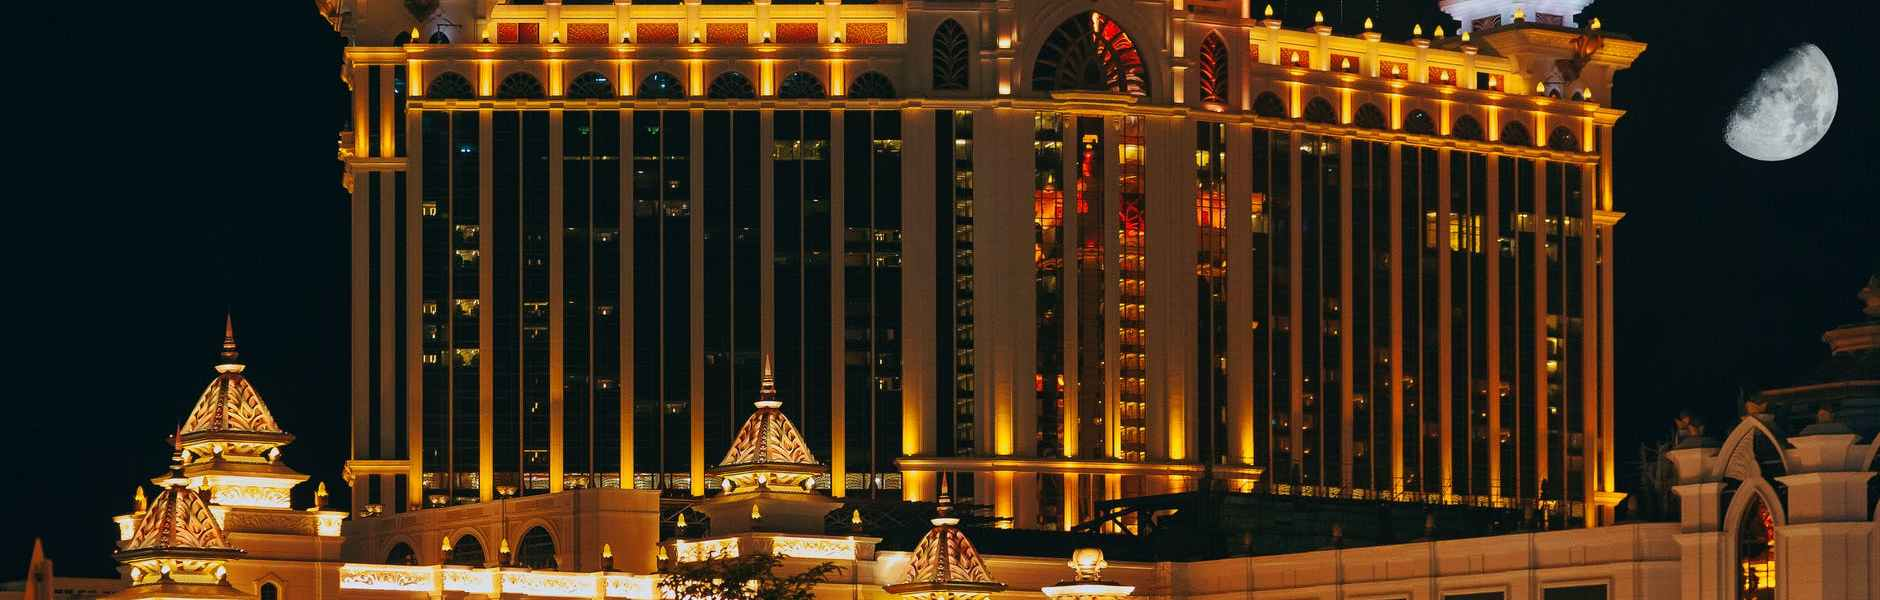 exterior of modern luxury hotel complex at night